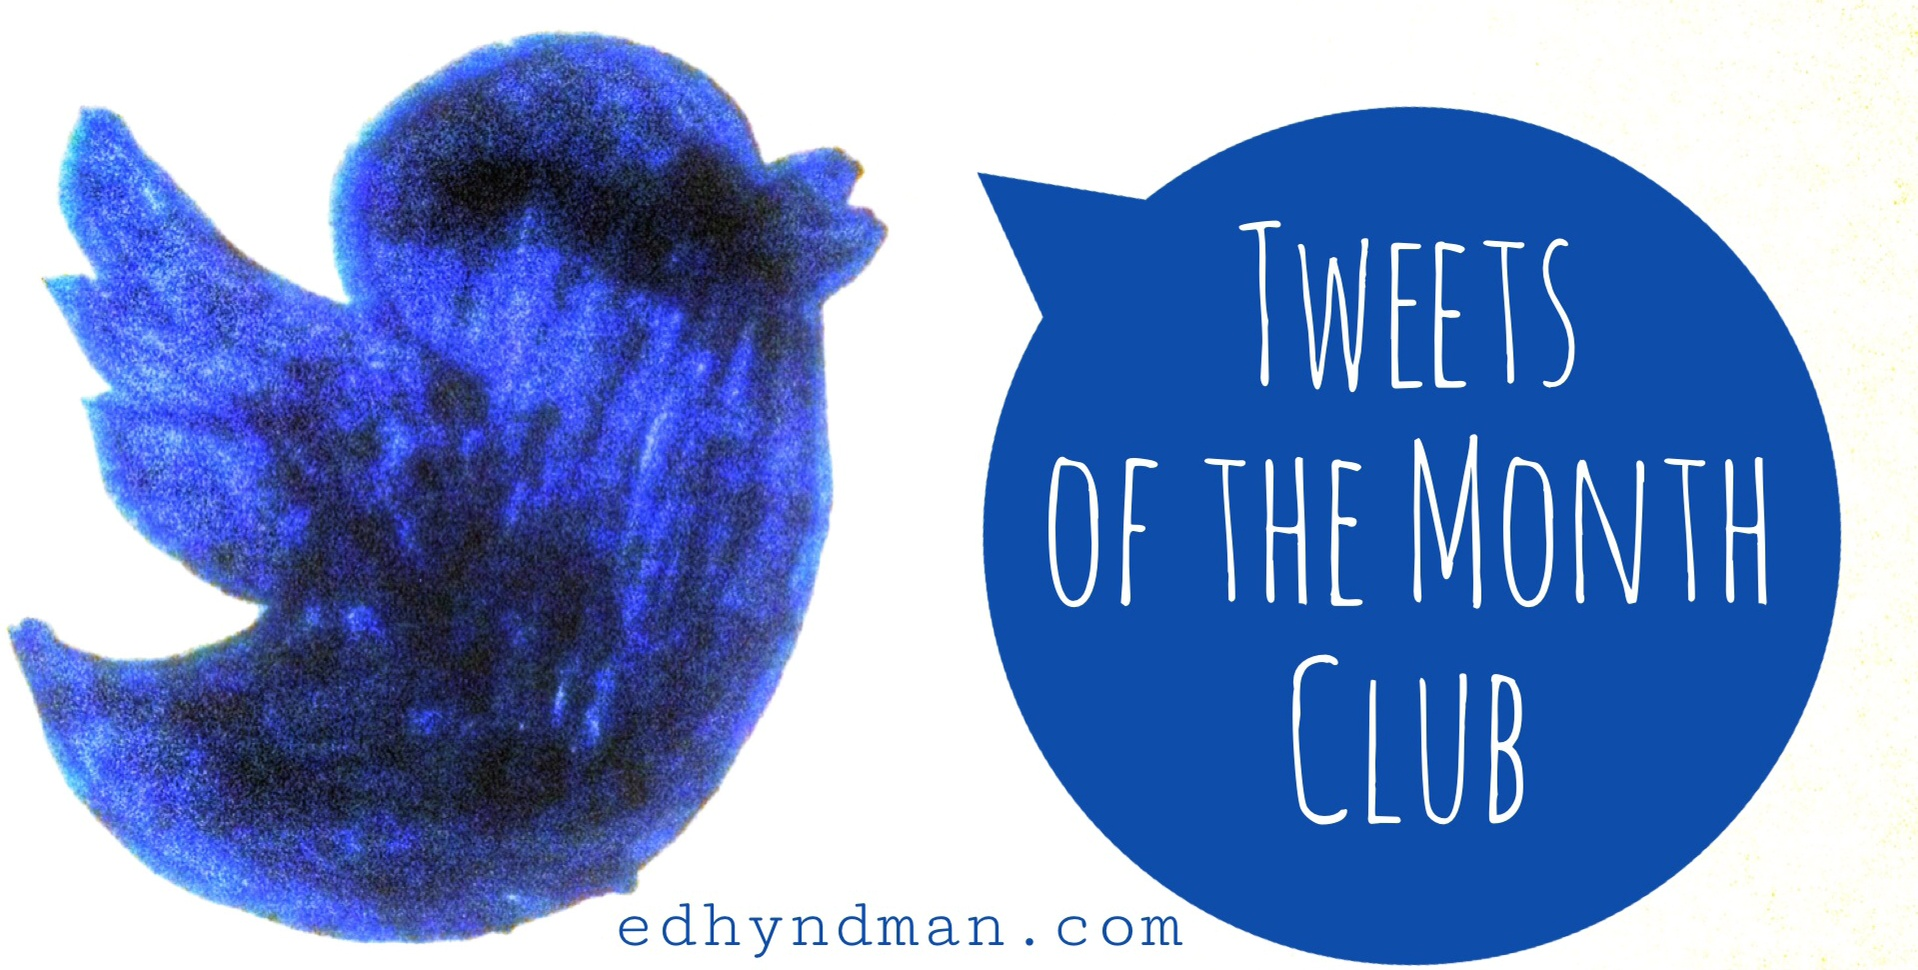 Tweets of the Month Club | May 2018